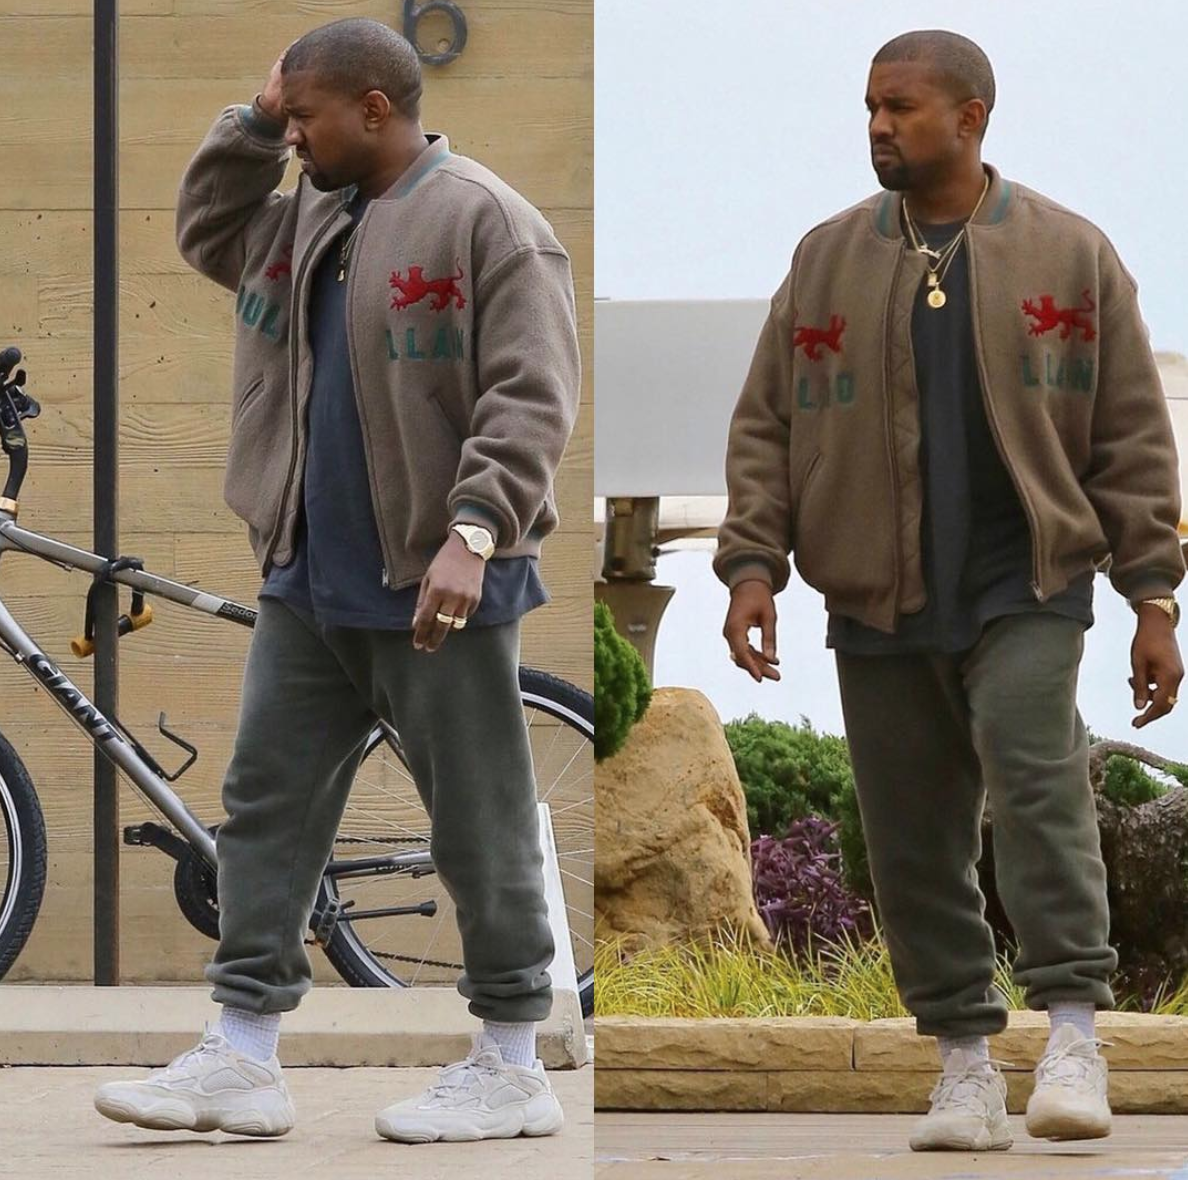 online store d298d 6d0bb SPOTTED: Kayne West In YEEZY Season 5 Jacket And adidas ...